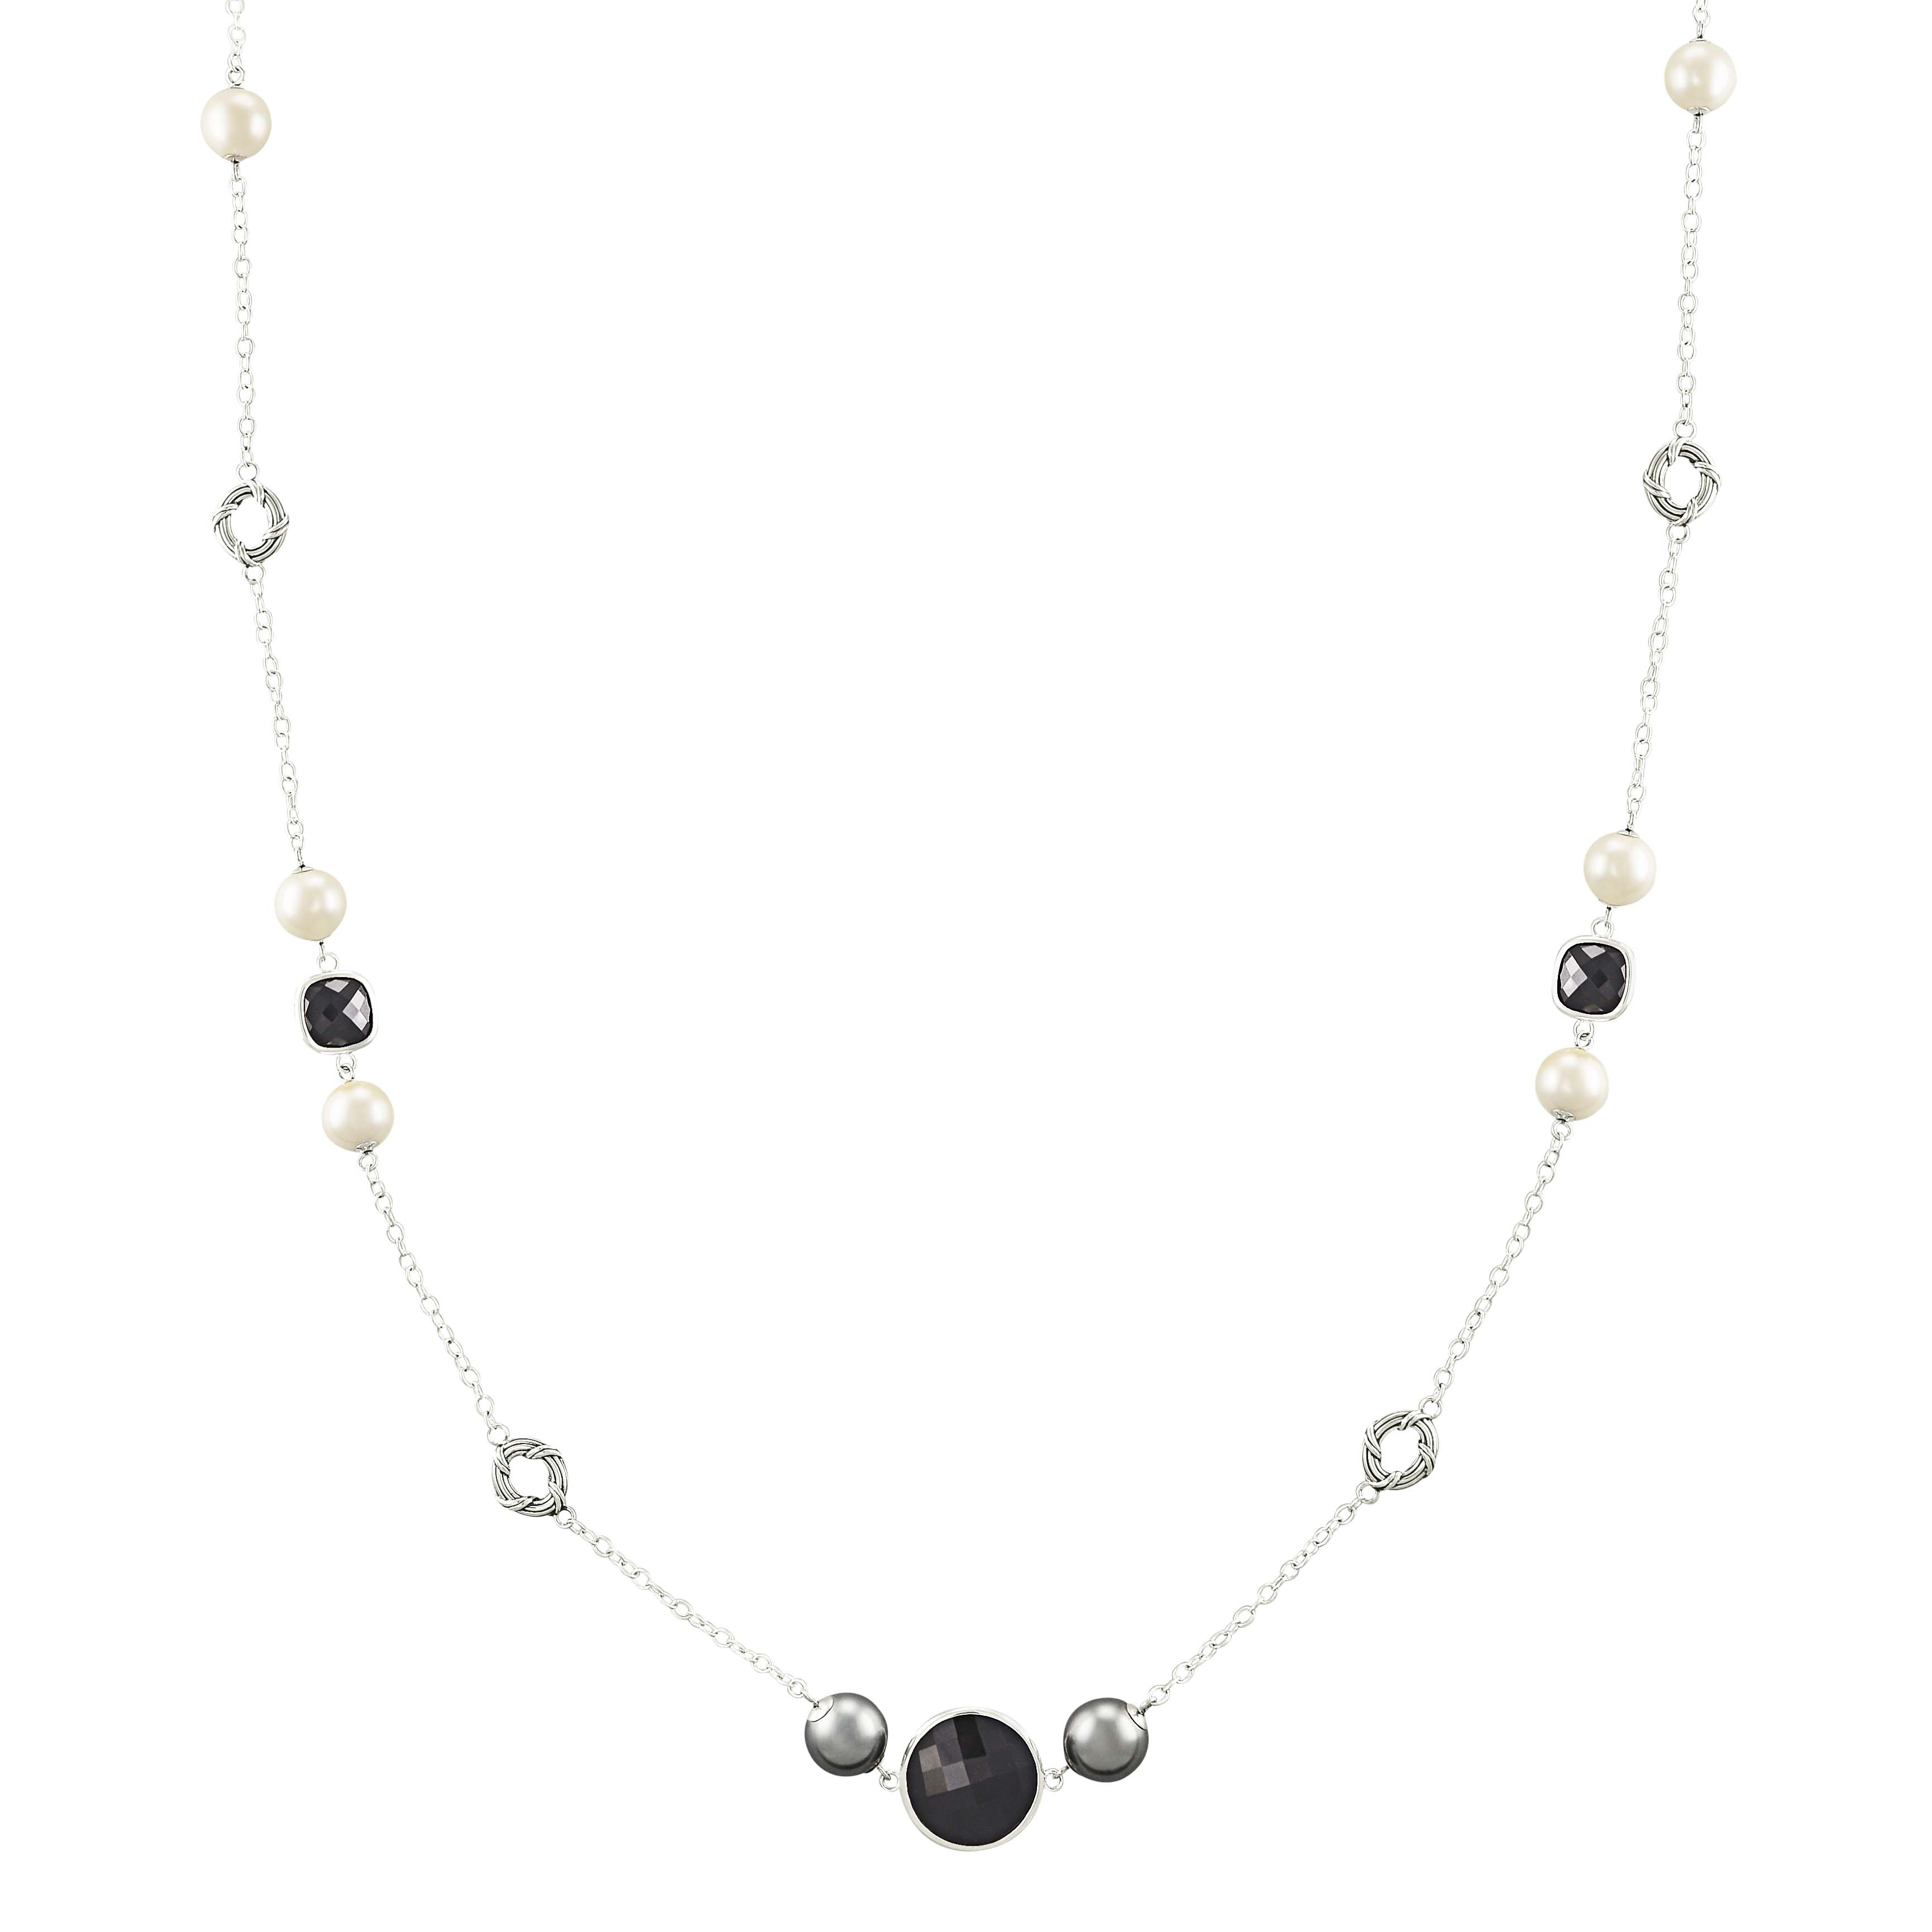 Long Shell Pearl and Black Onyx Station Necklace in sterling silver